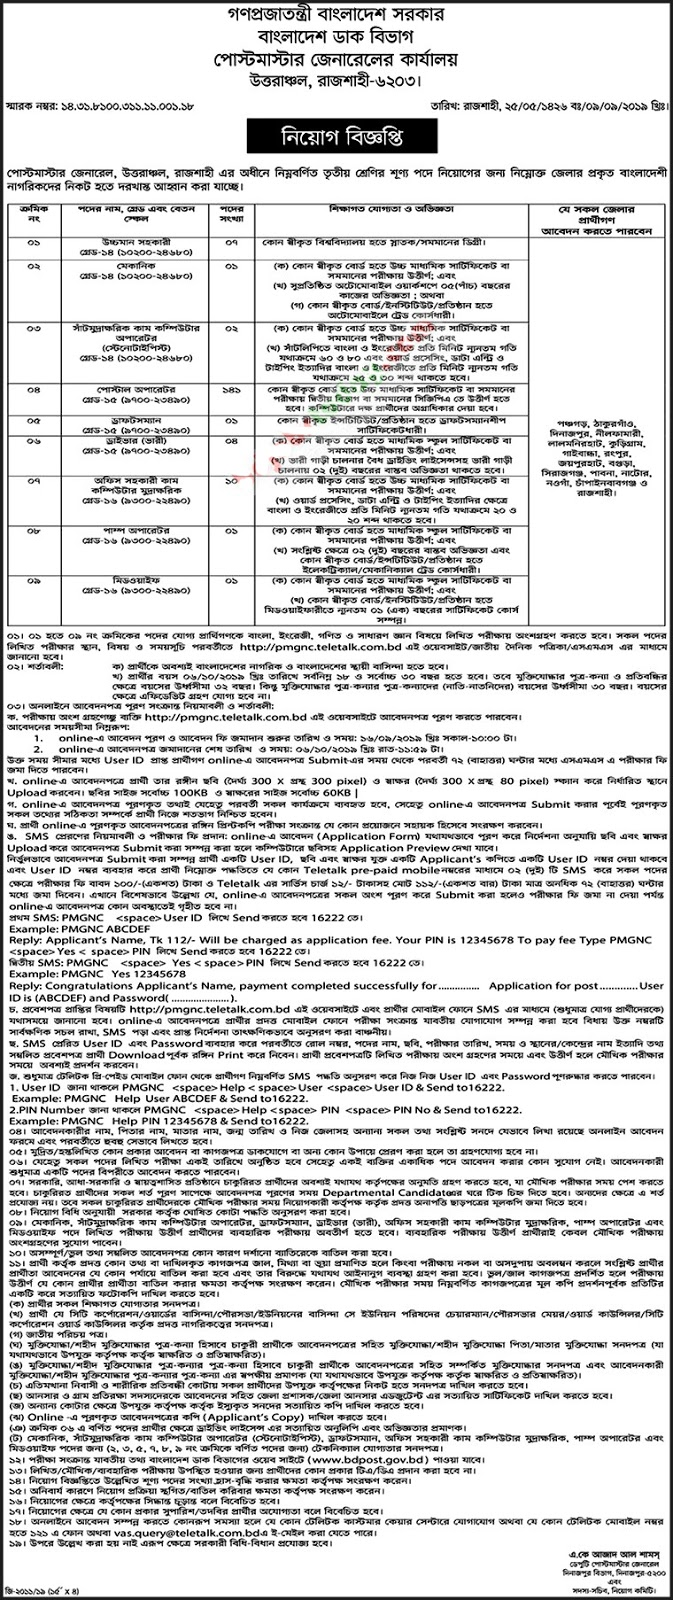 Office of the Postmaster General Job Circular 2019